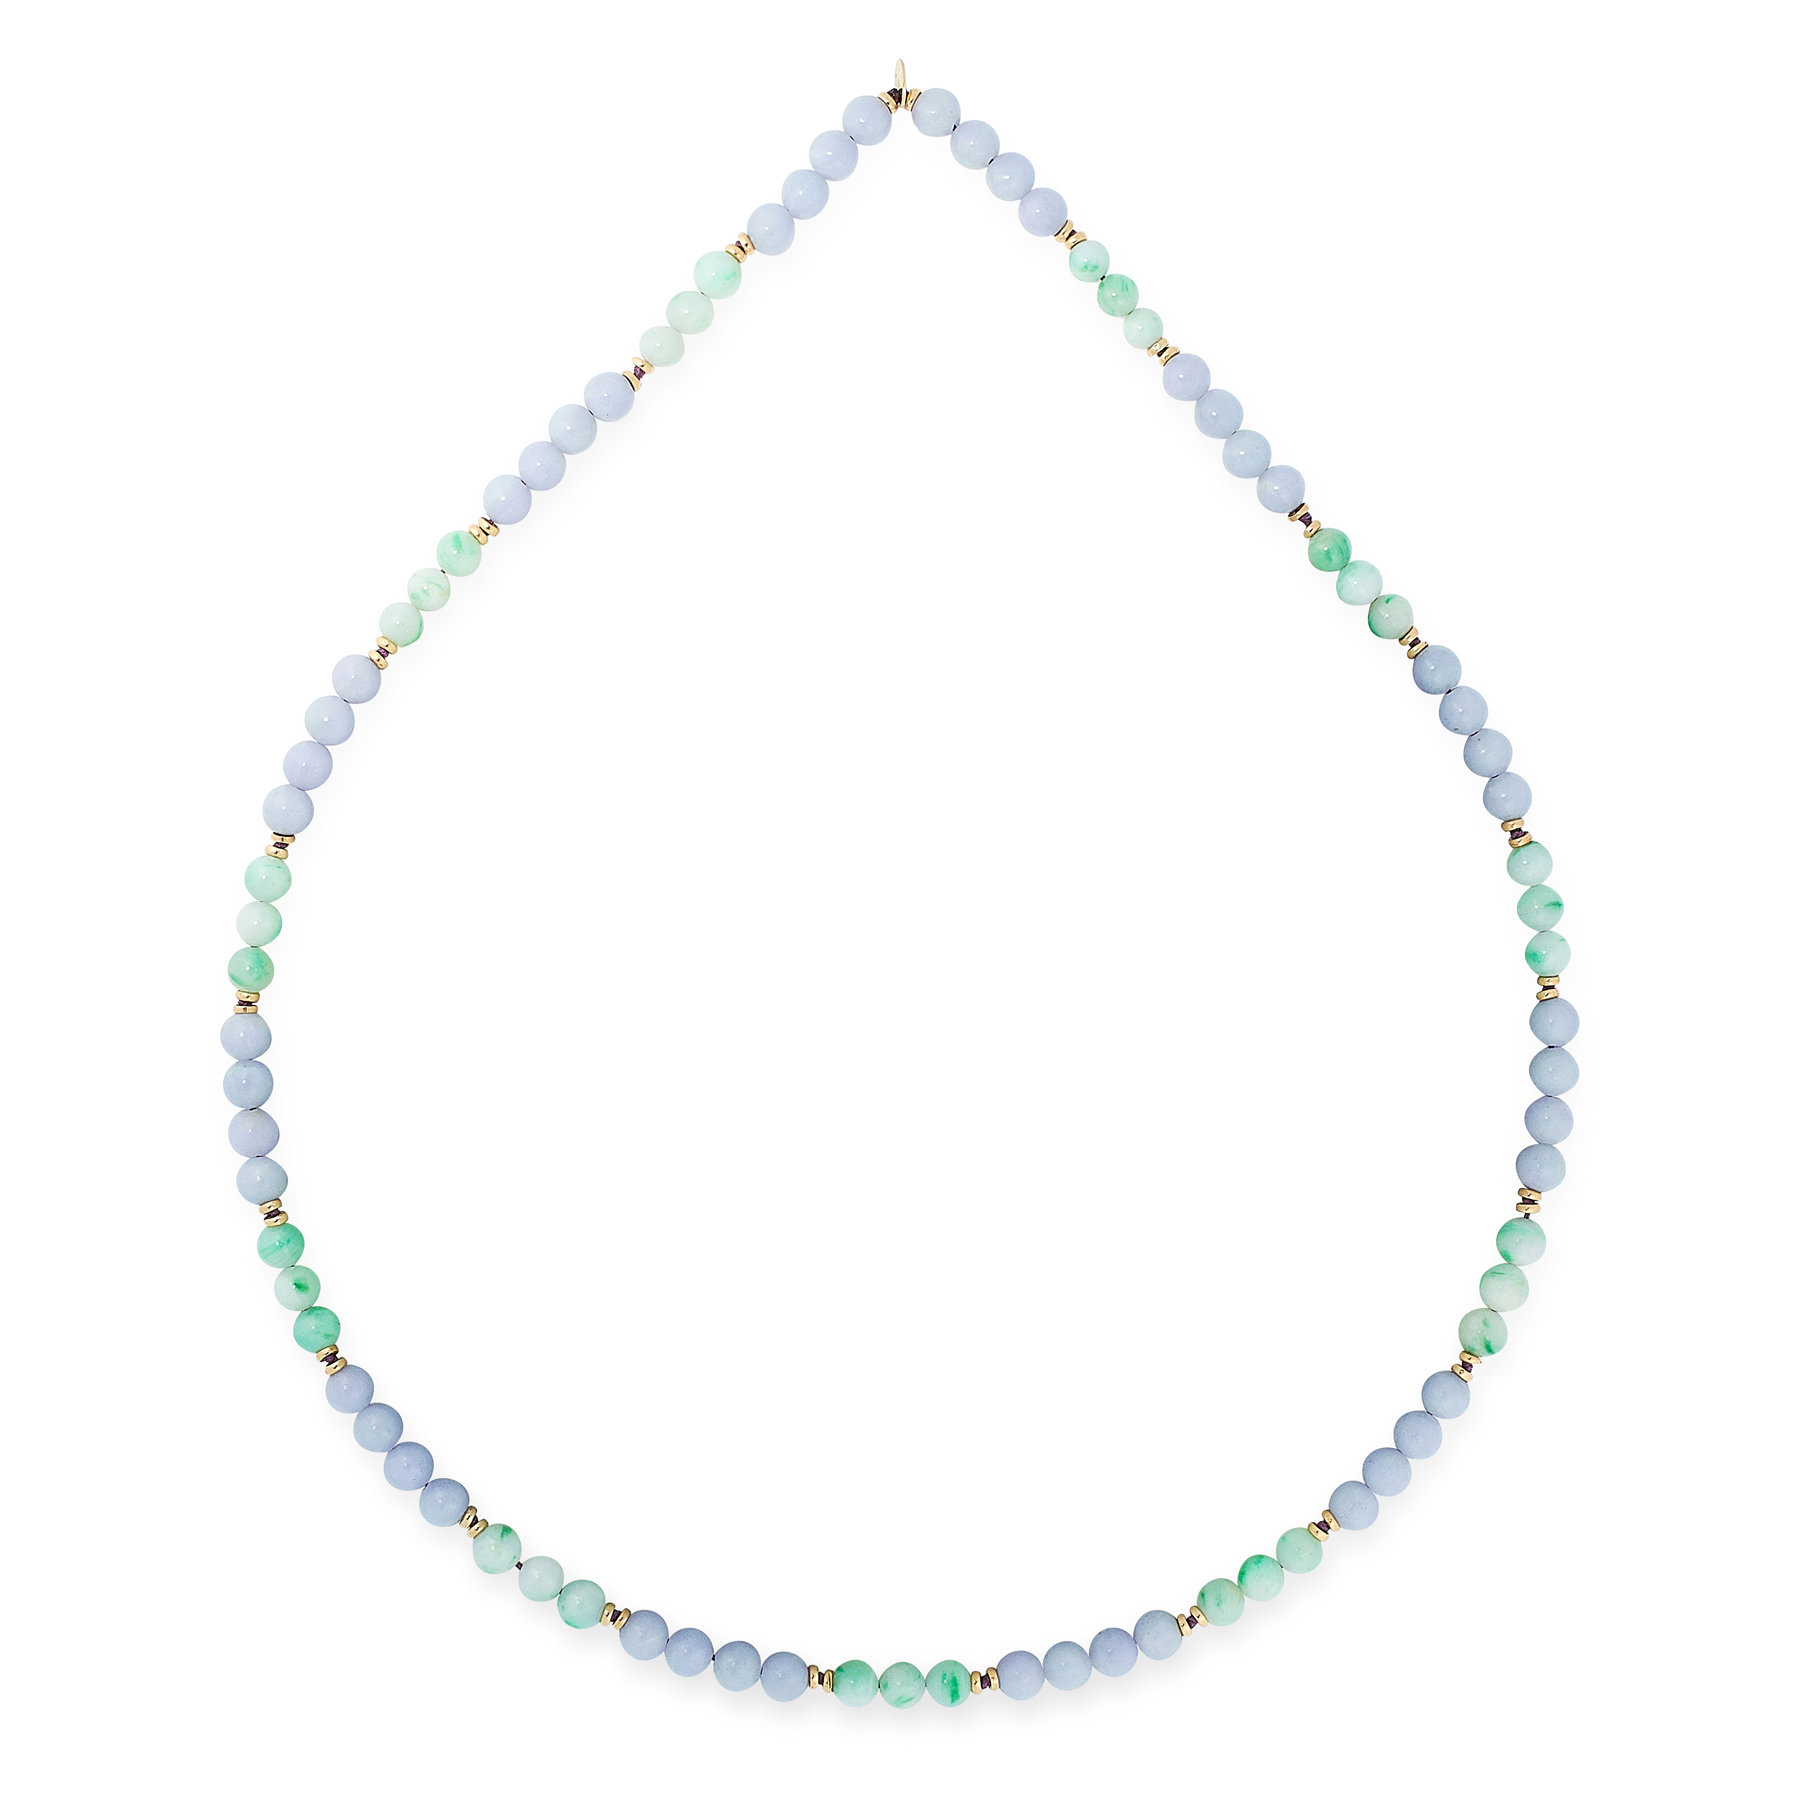 A LAVENDER AND GREEN JADEITE JADE BEAD NECKLACE, TIFFANY & CO in 14ct yellow gold, comprising a